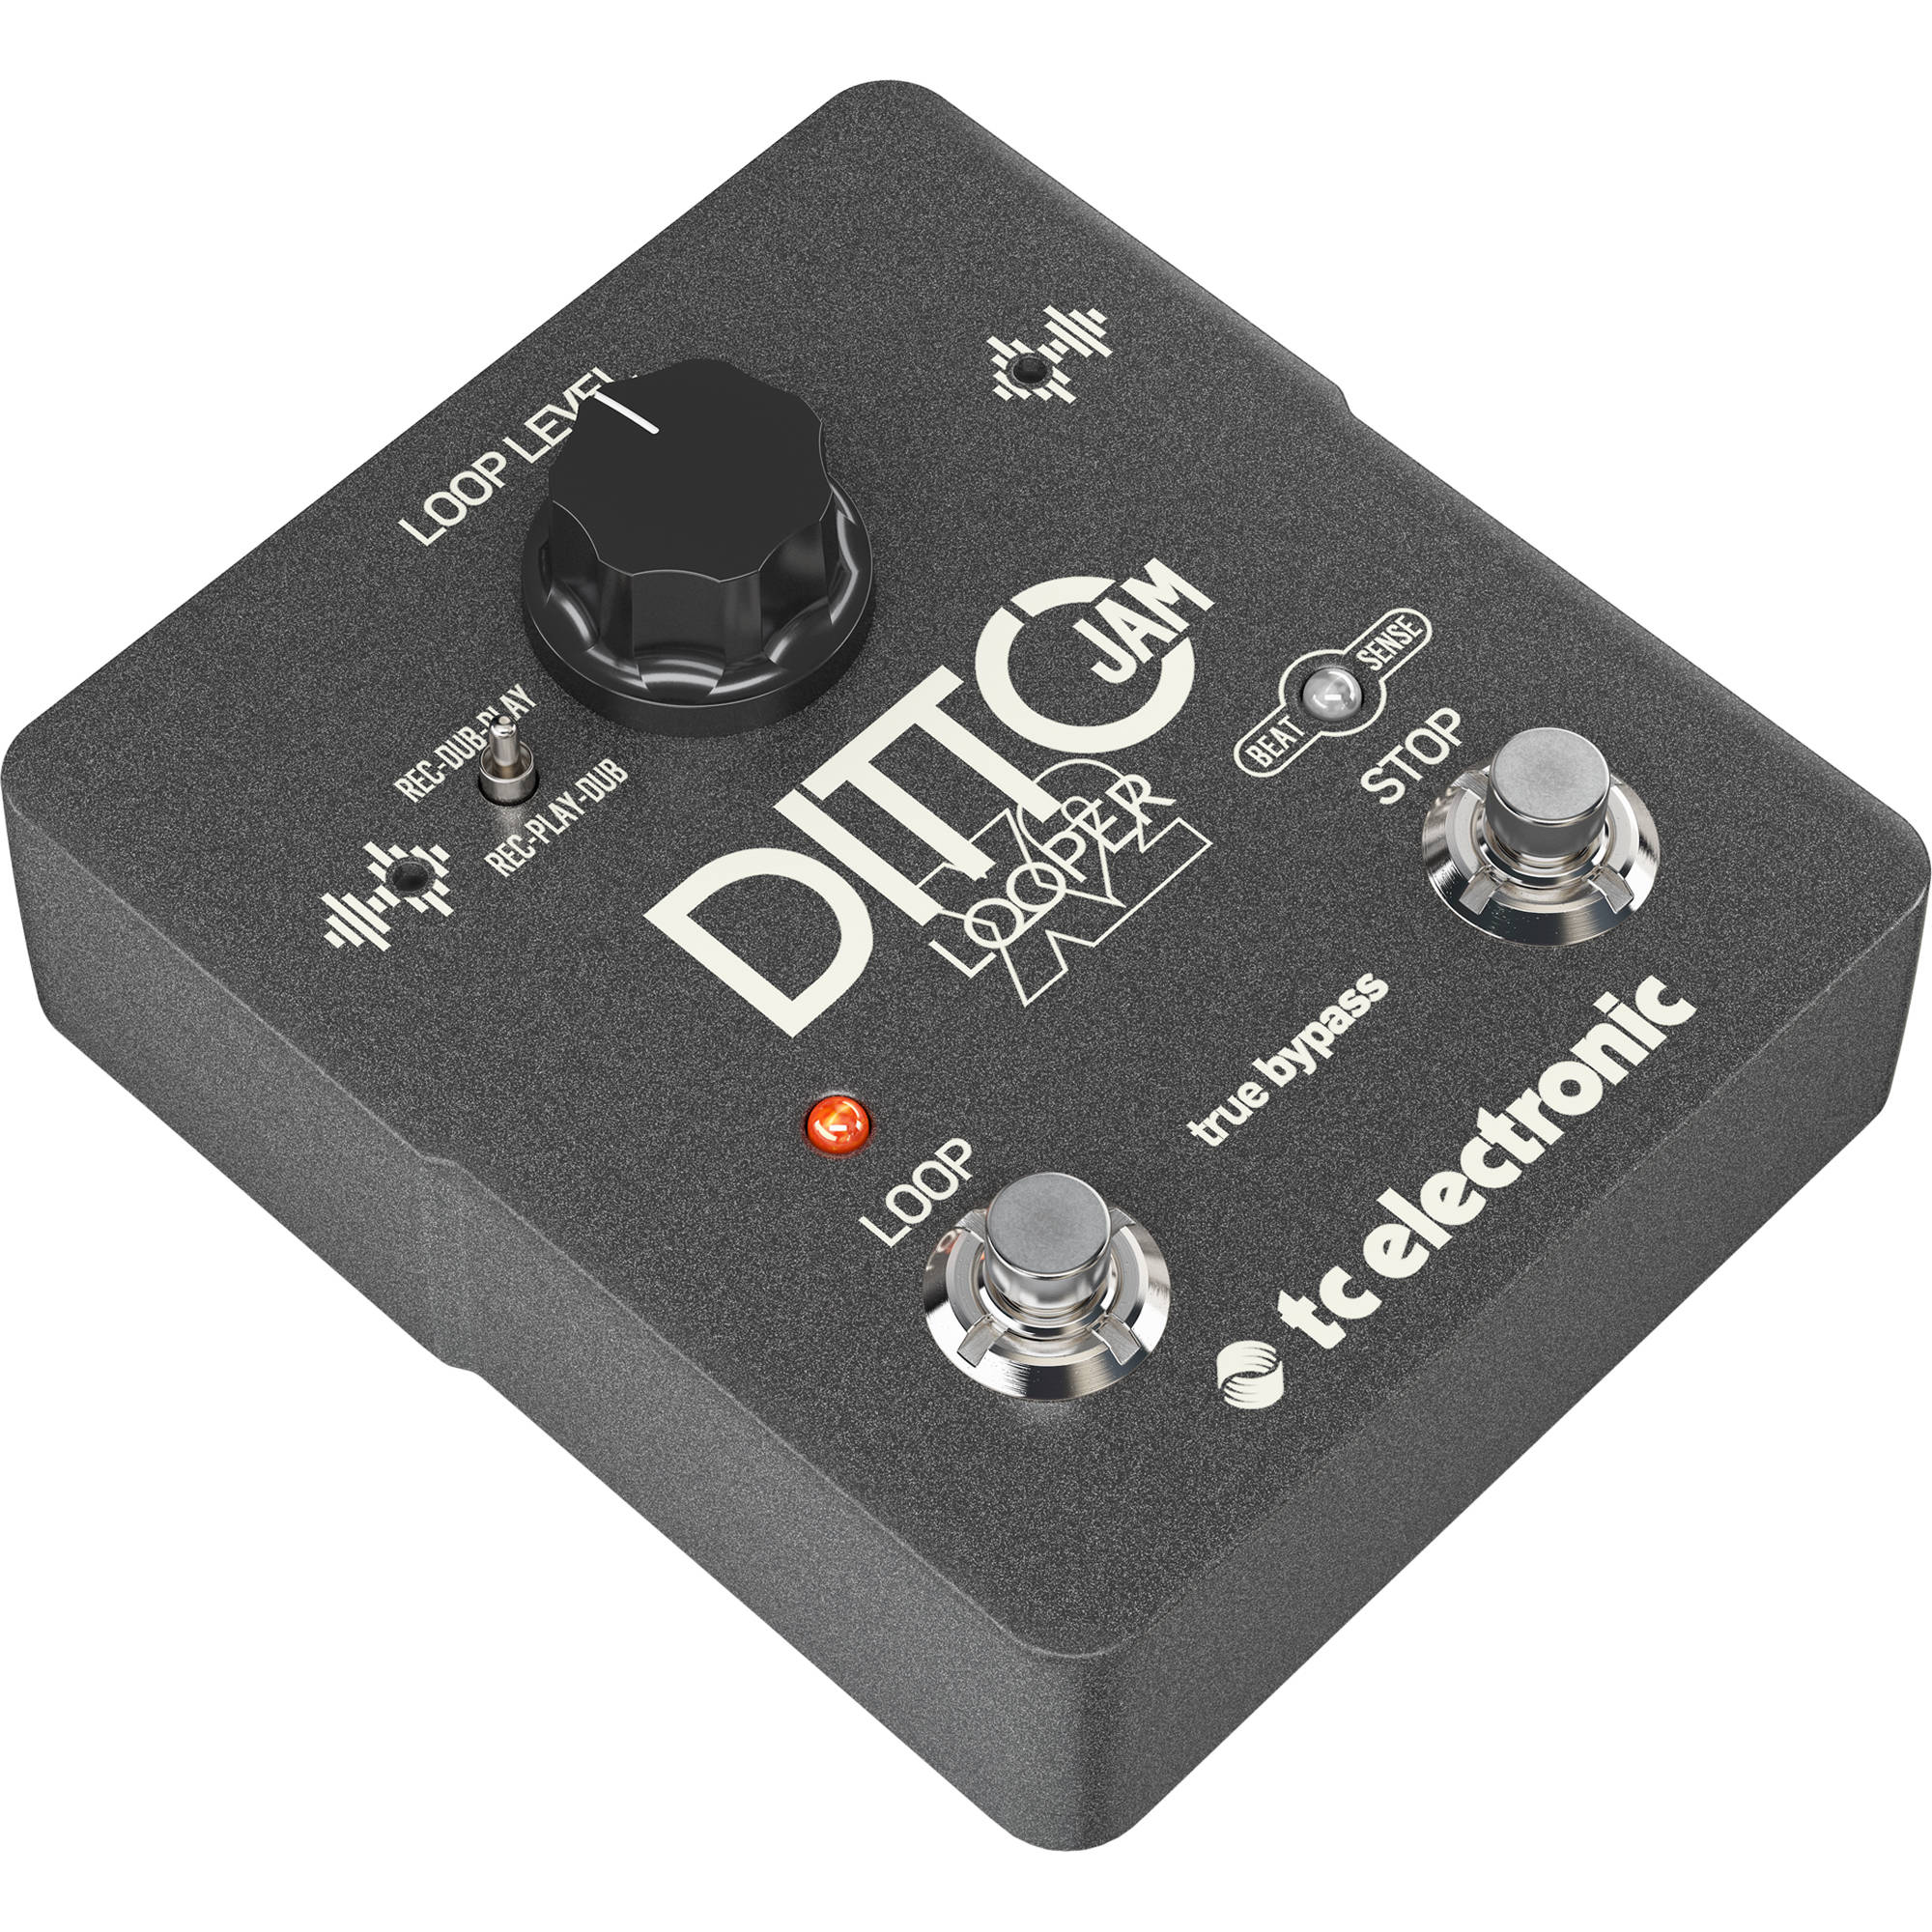 TC Electronic Ditto Jam X2 Looper FREE 2 DAY SHIP